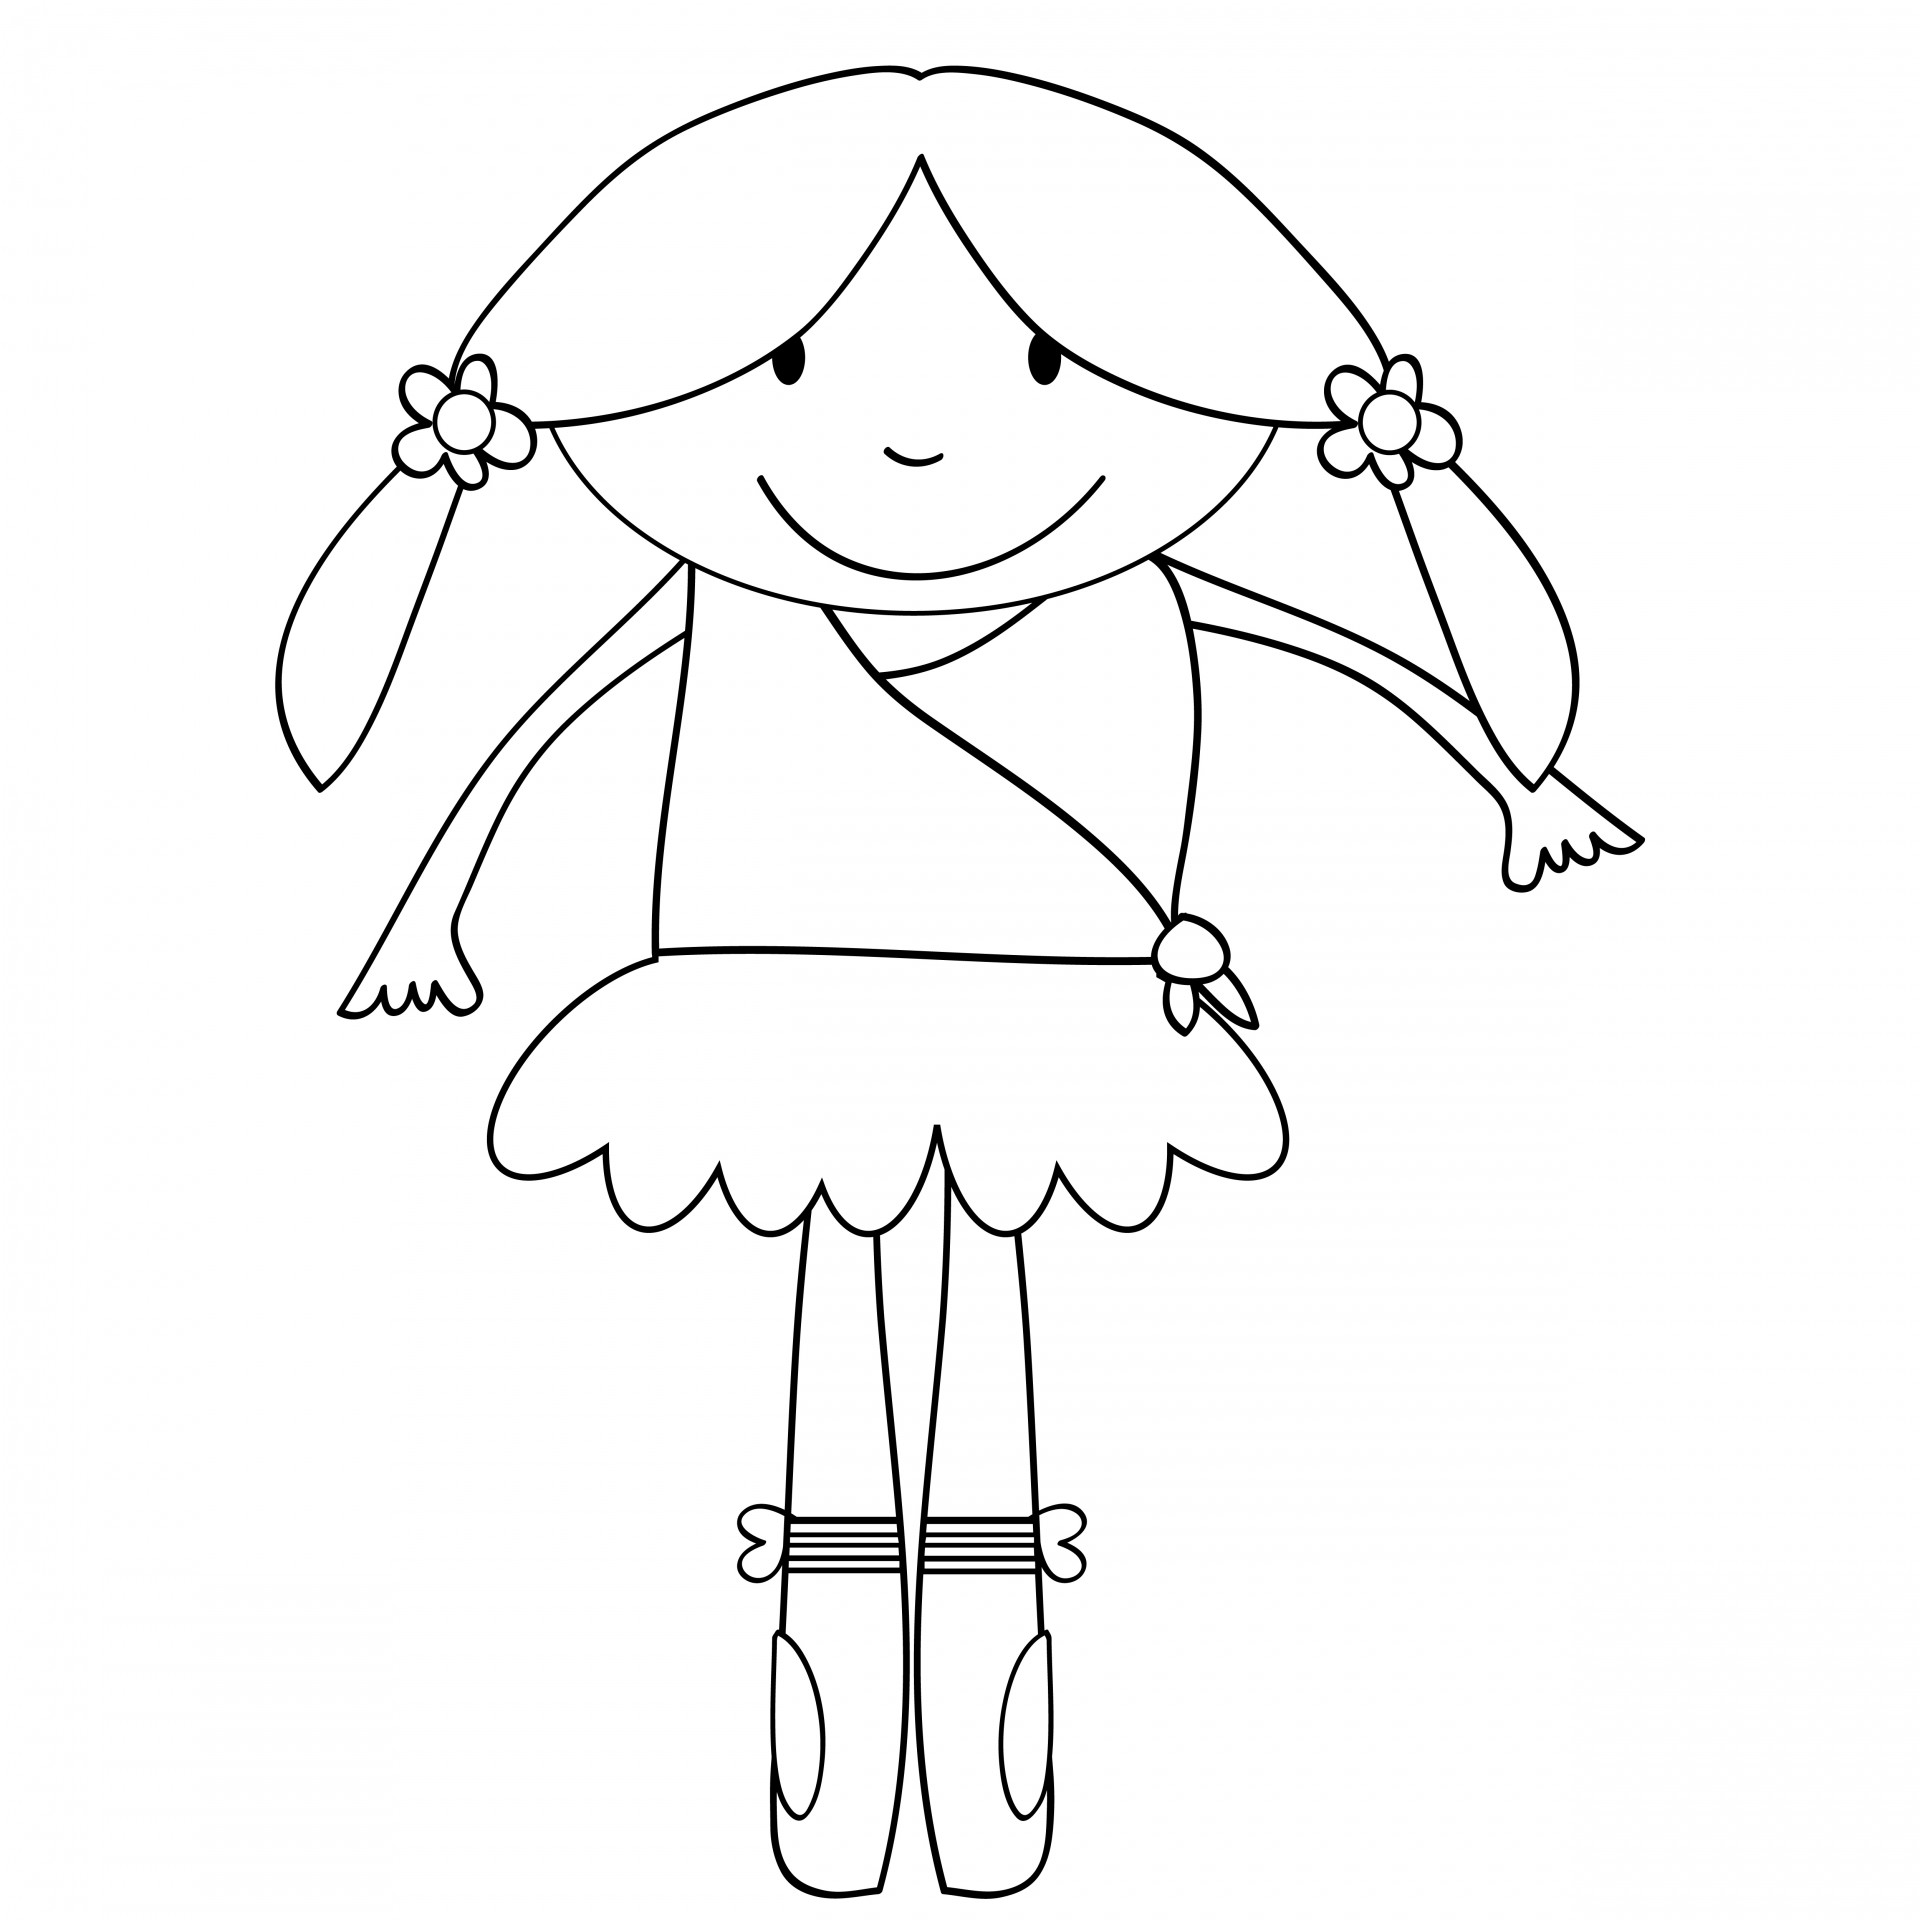 Ballerina Kids Coloring Page Free Stock Photo